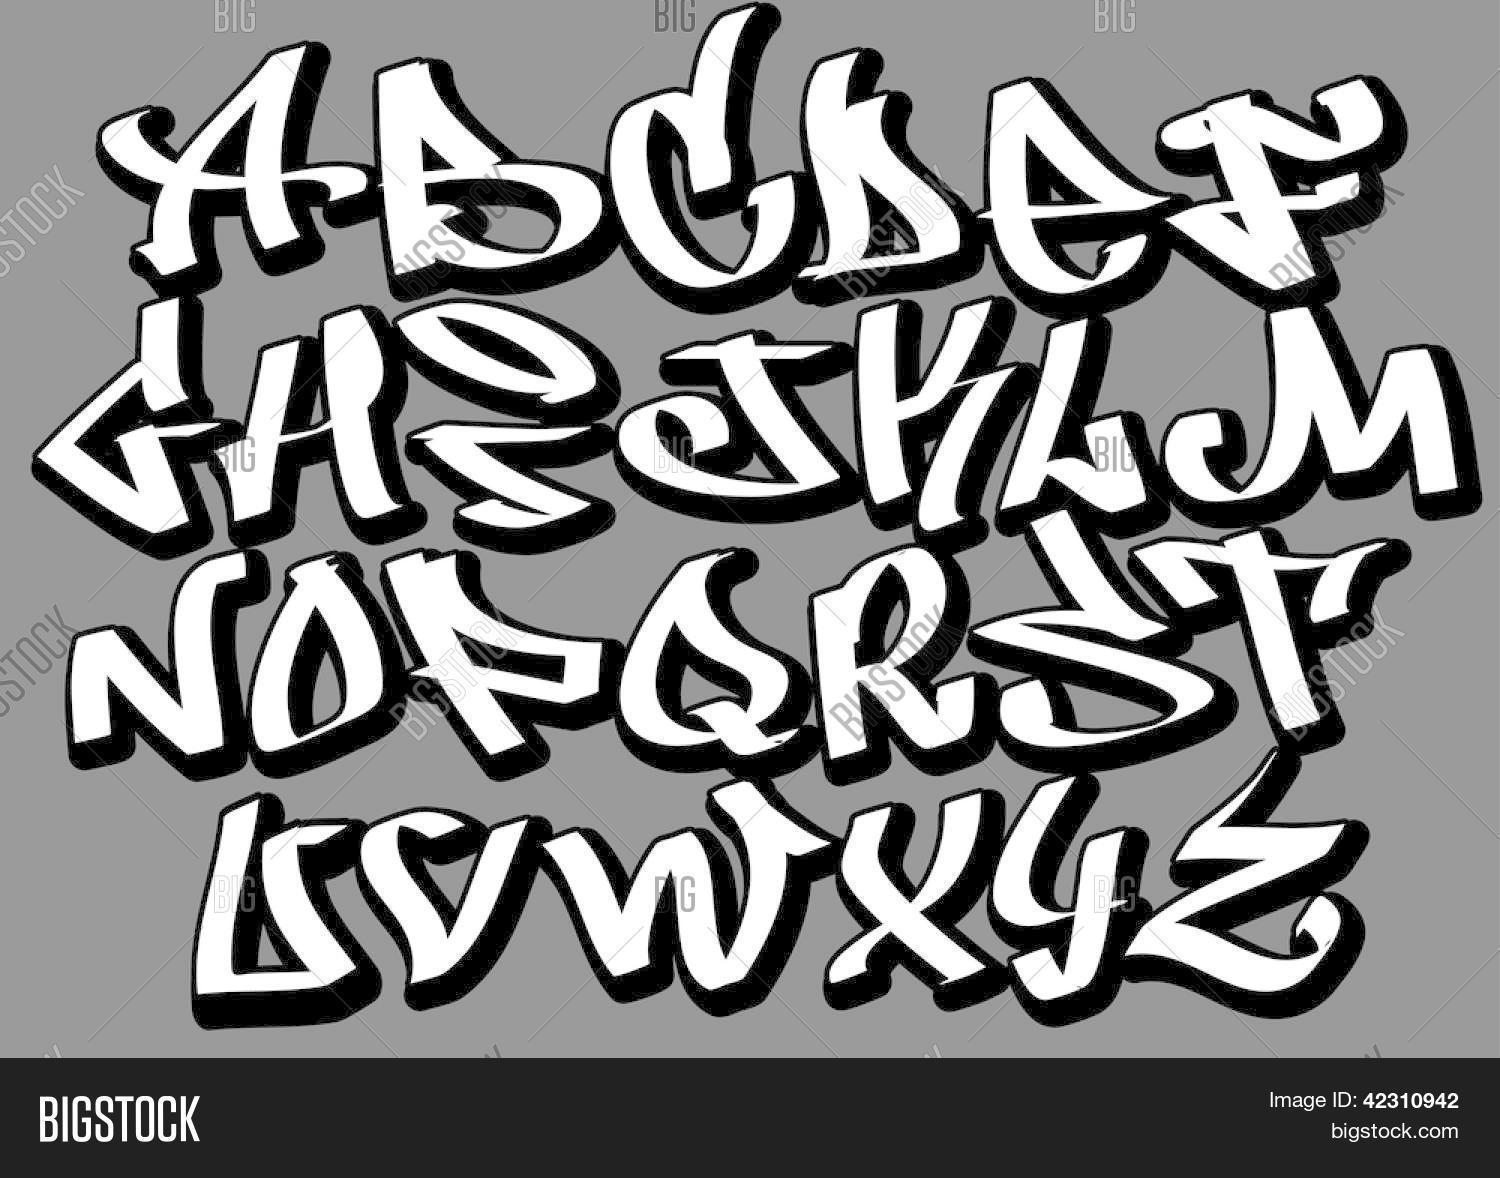 Preferenza Graffiti Font Alphabet Letters. Vector & Photo | Bigstock TI22